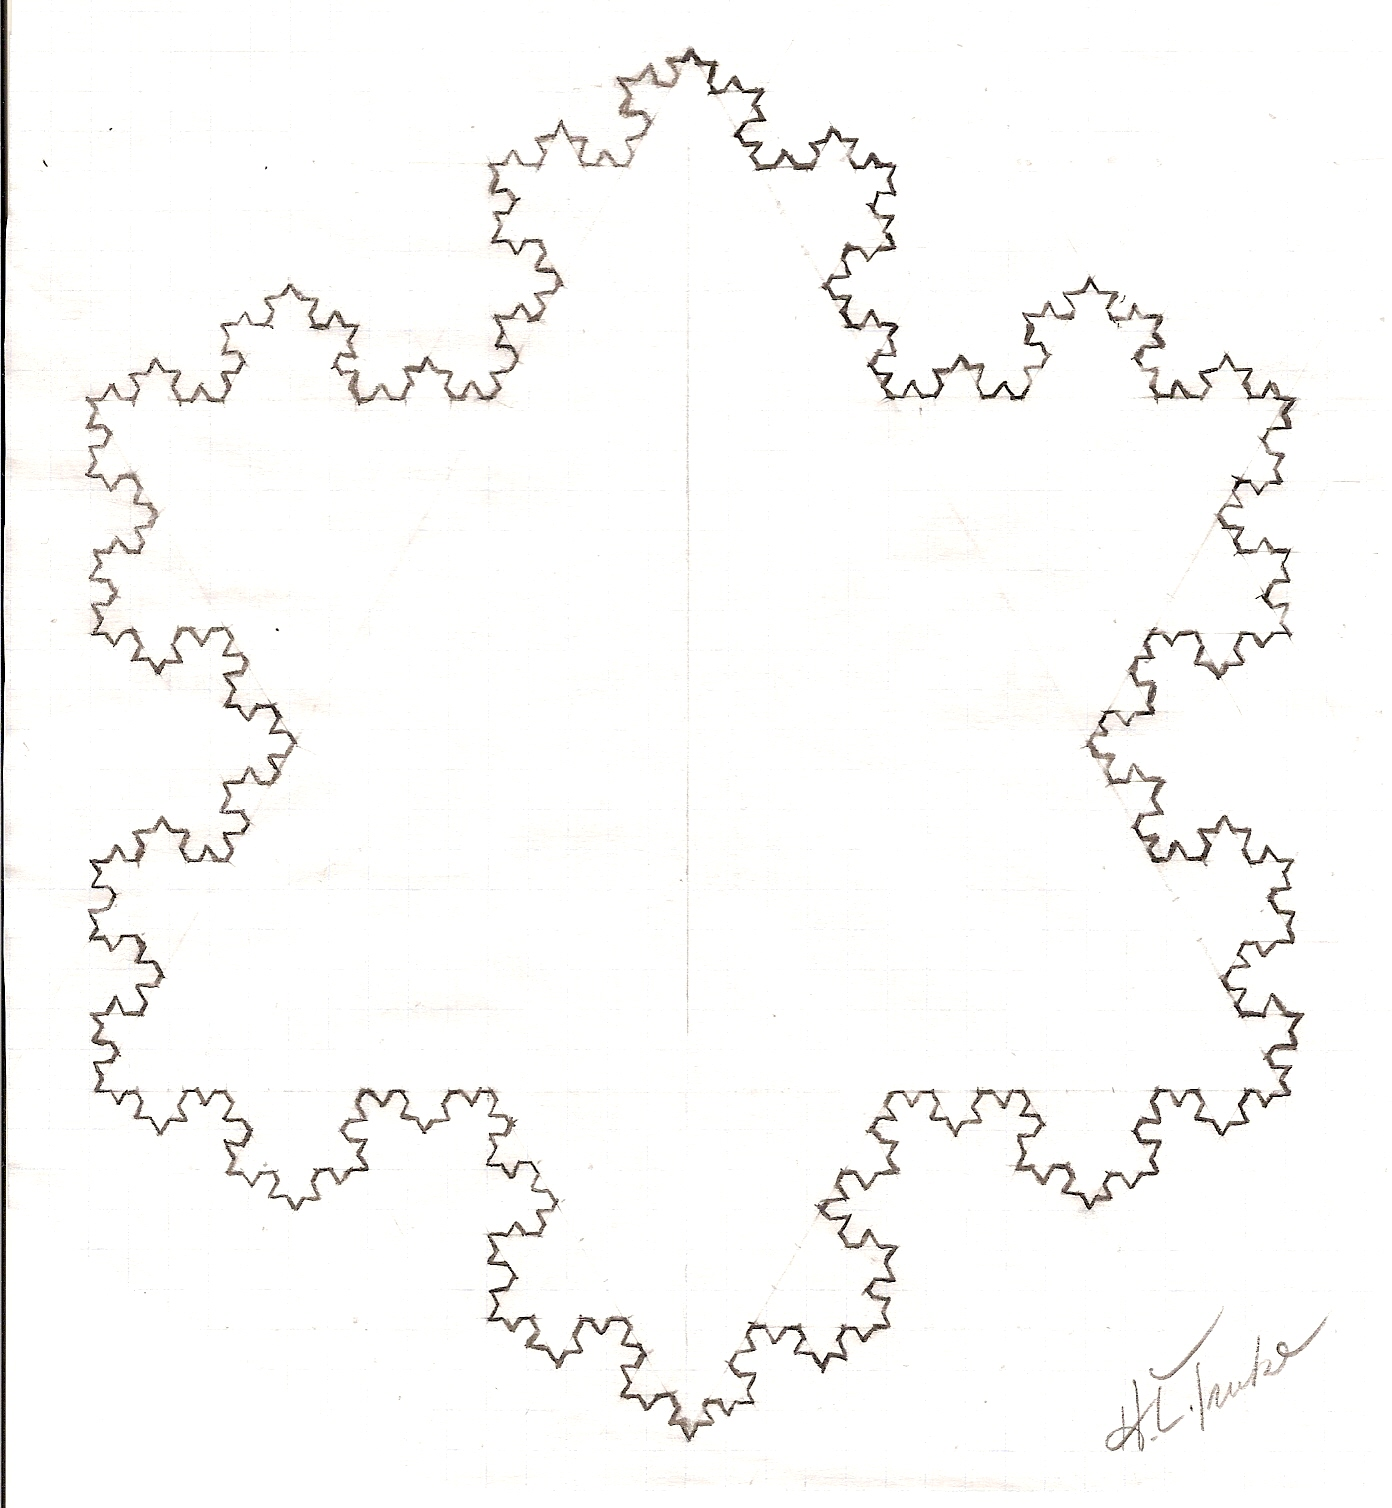 fractals you can draw the koch snowflake or did it really snow in